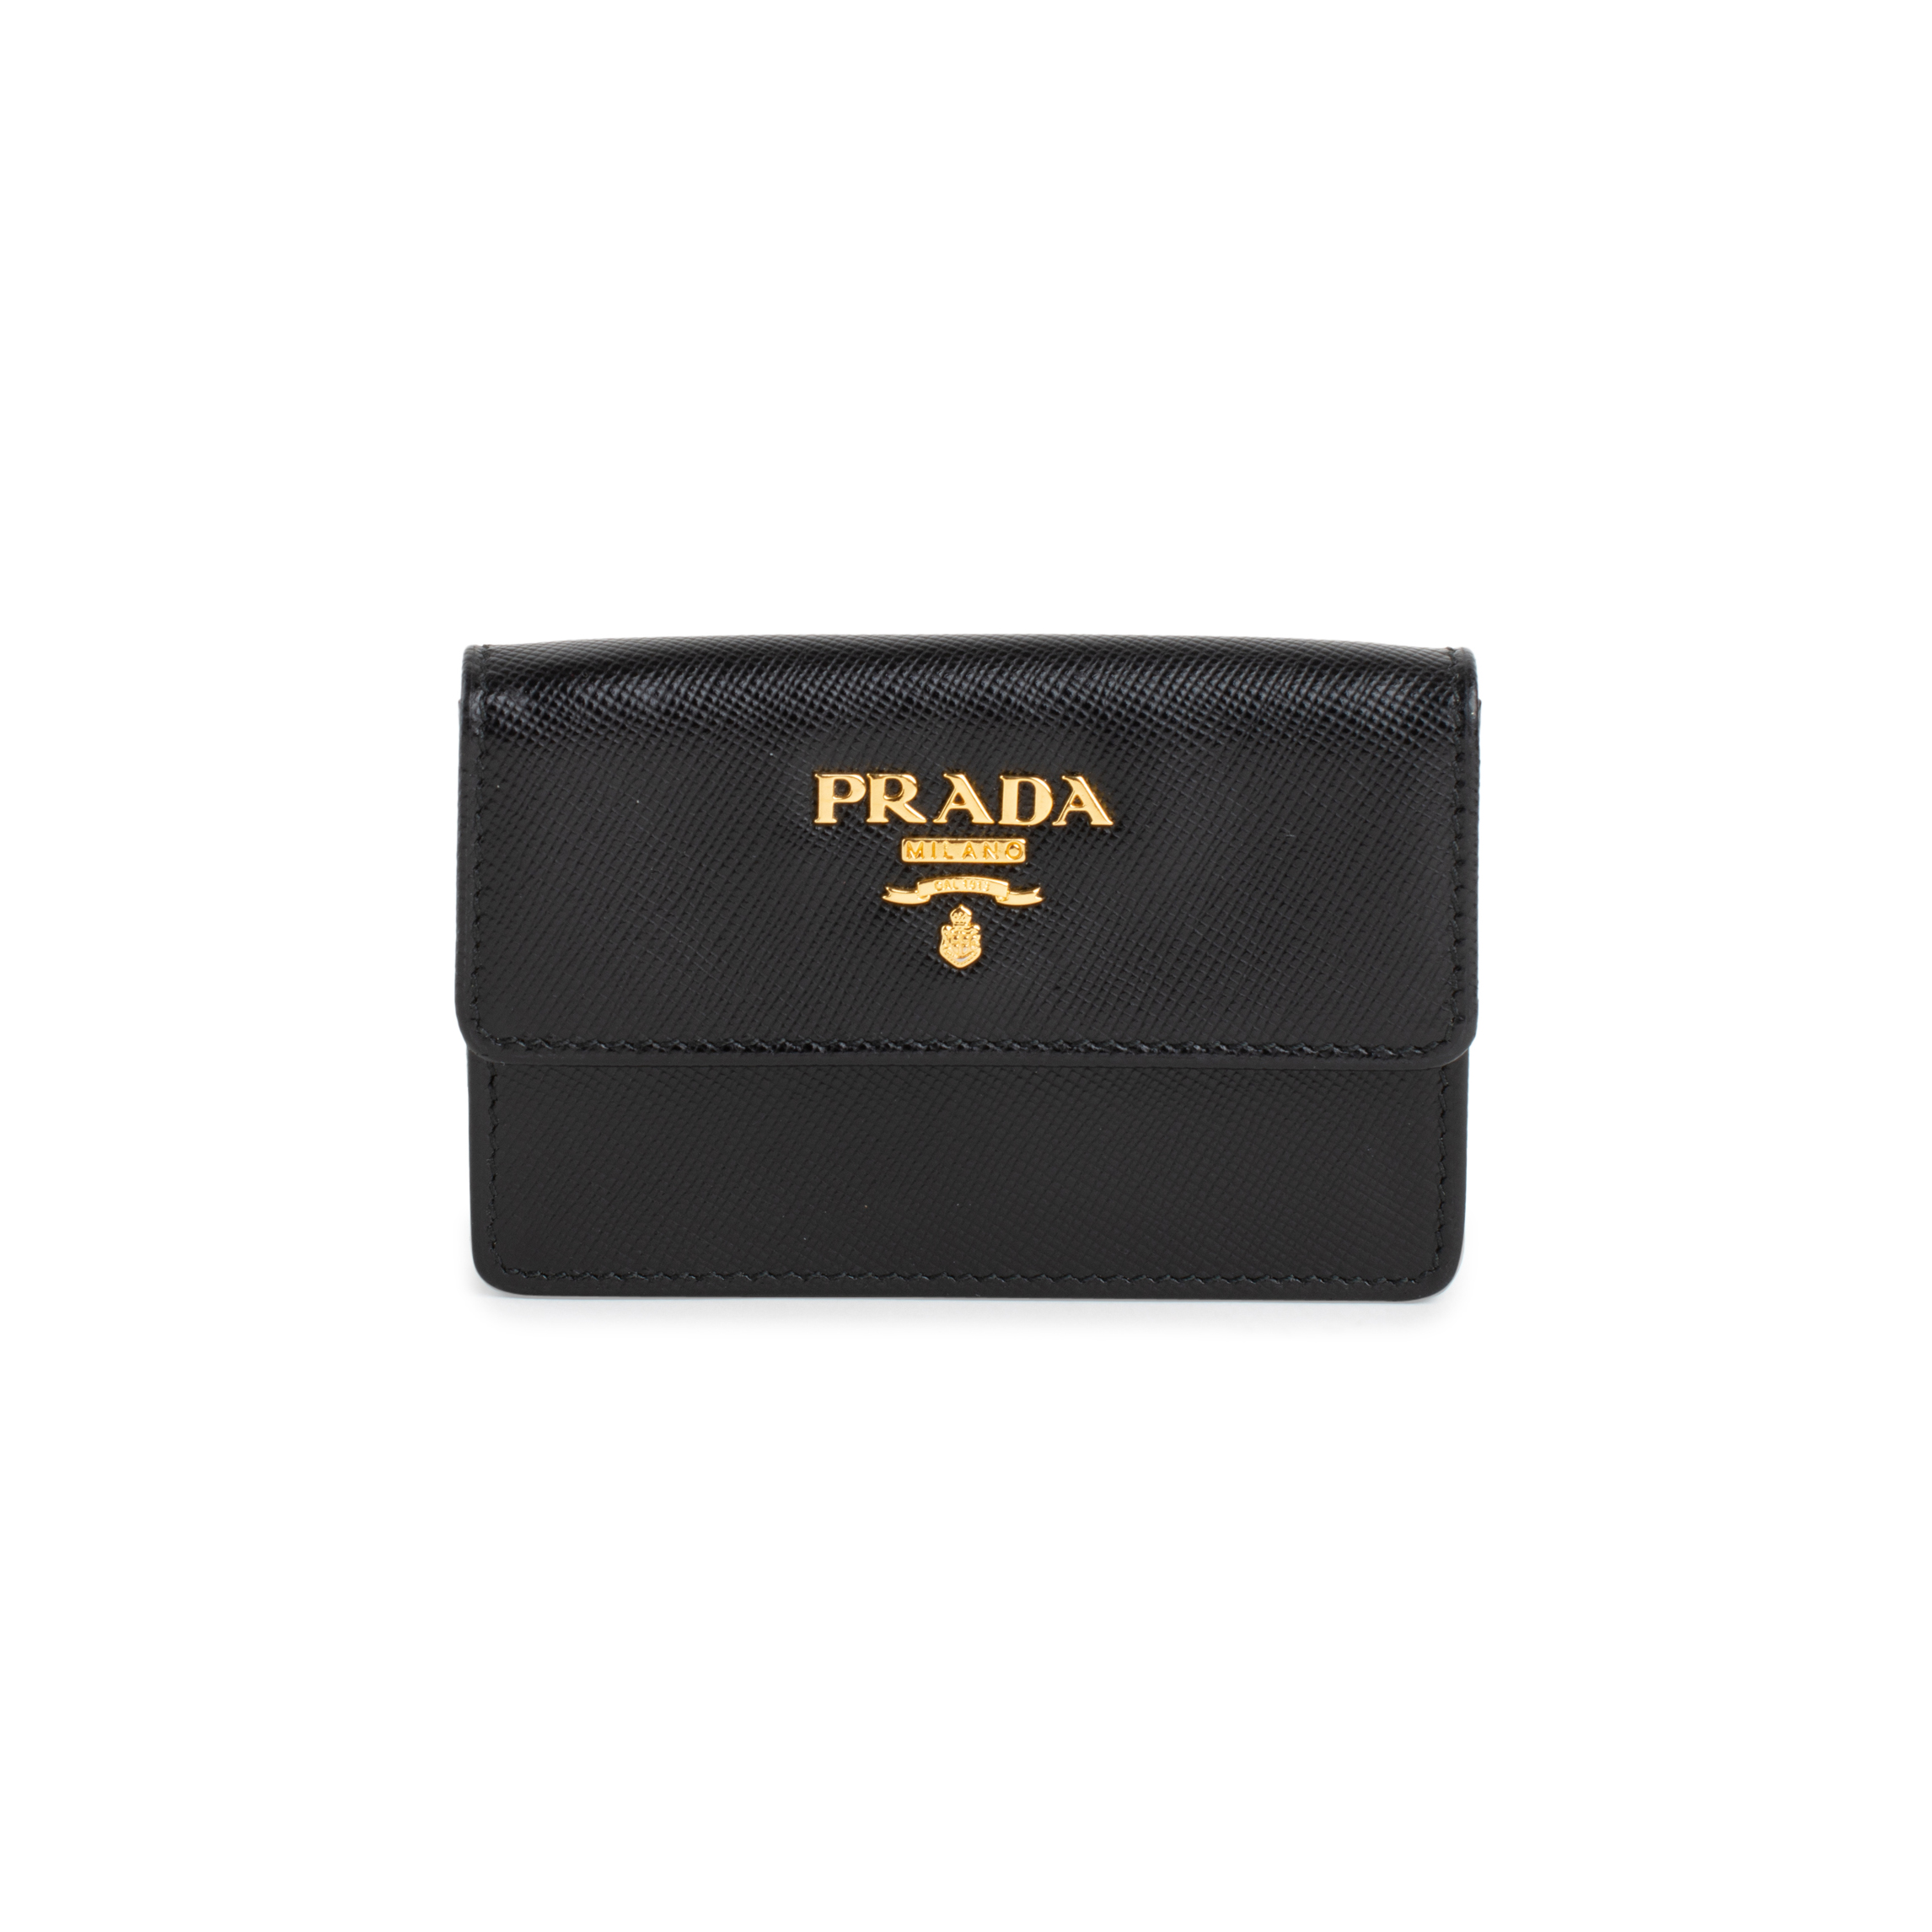 47160d93f826 Authentic Second Hand Prada Saffiano Card Holder (PSS-556-00031) | THE  FIFTH COLLECTION